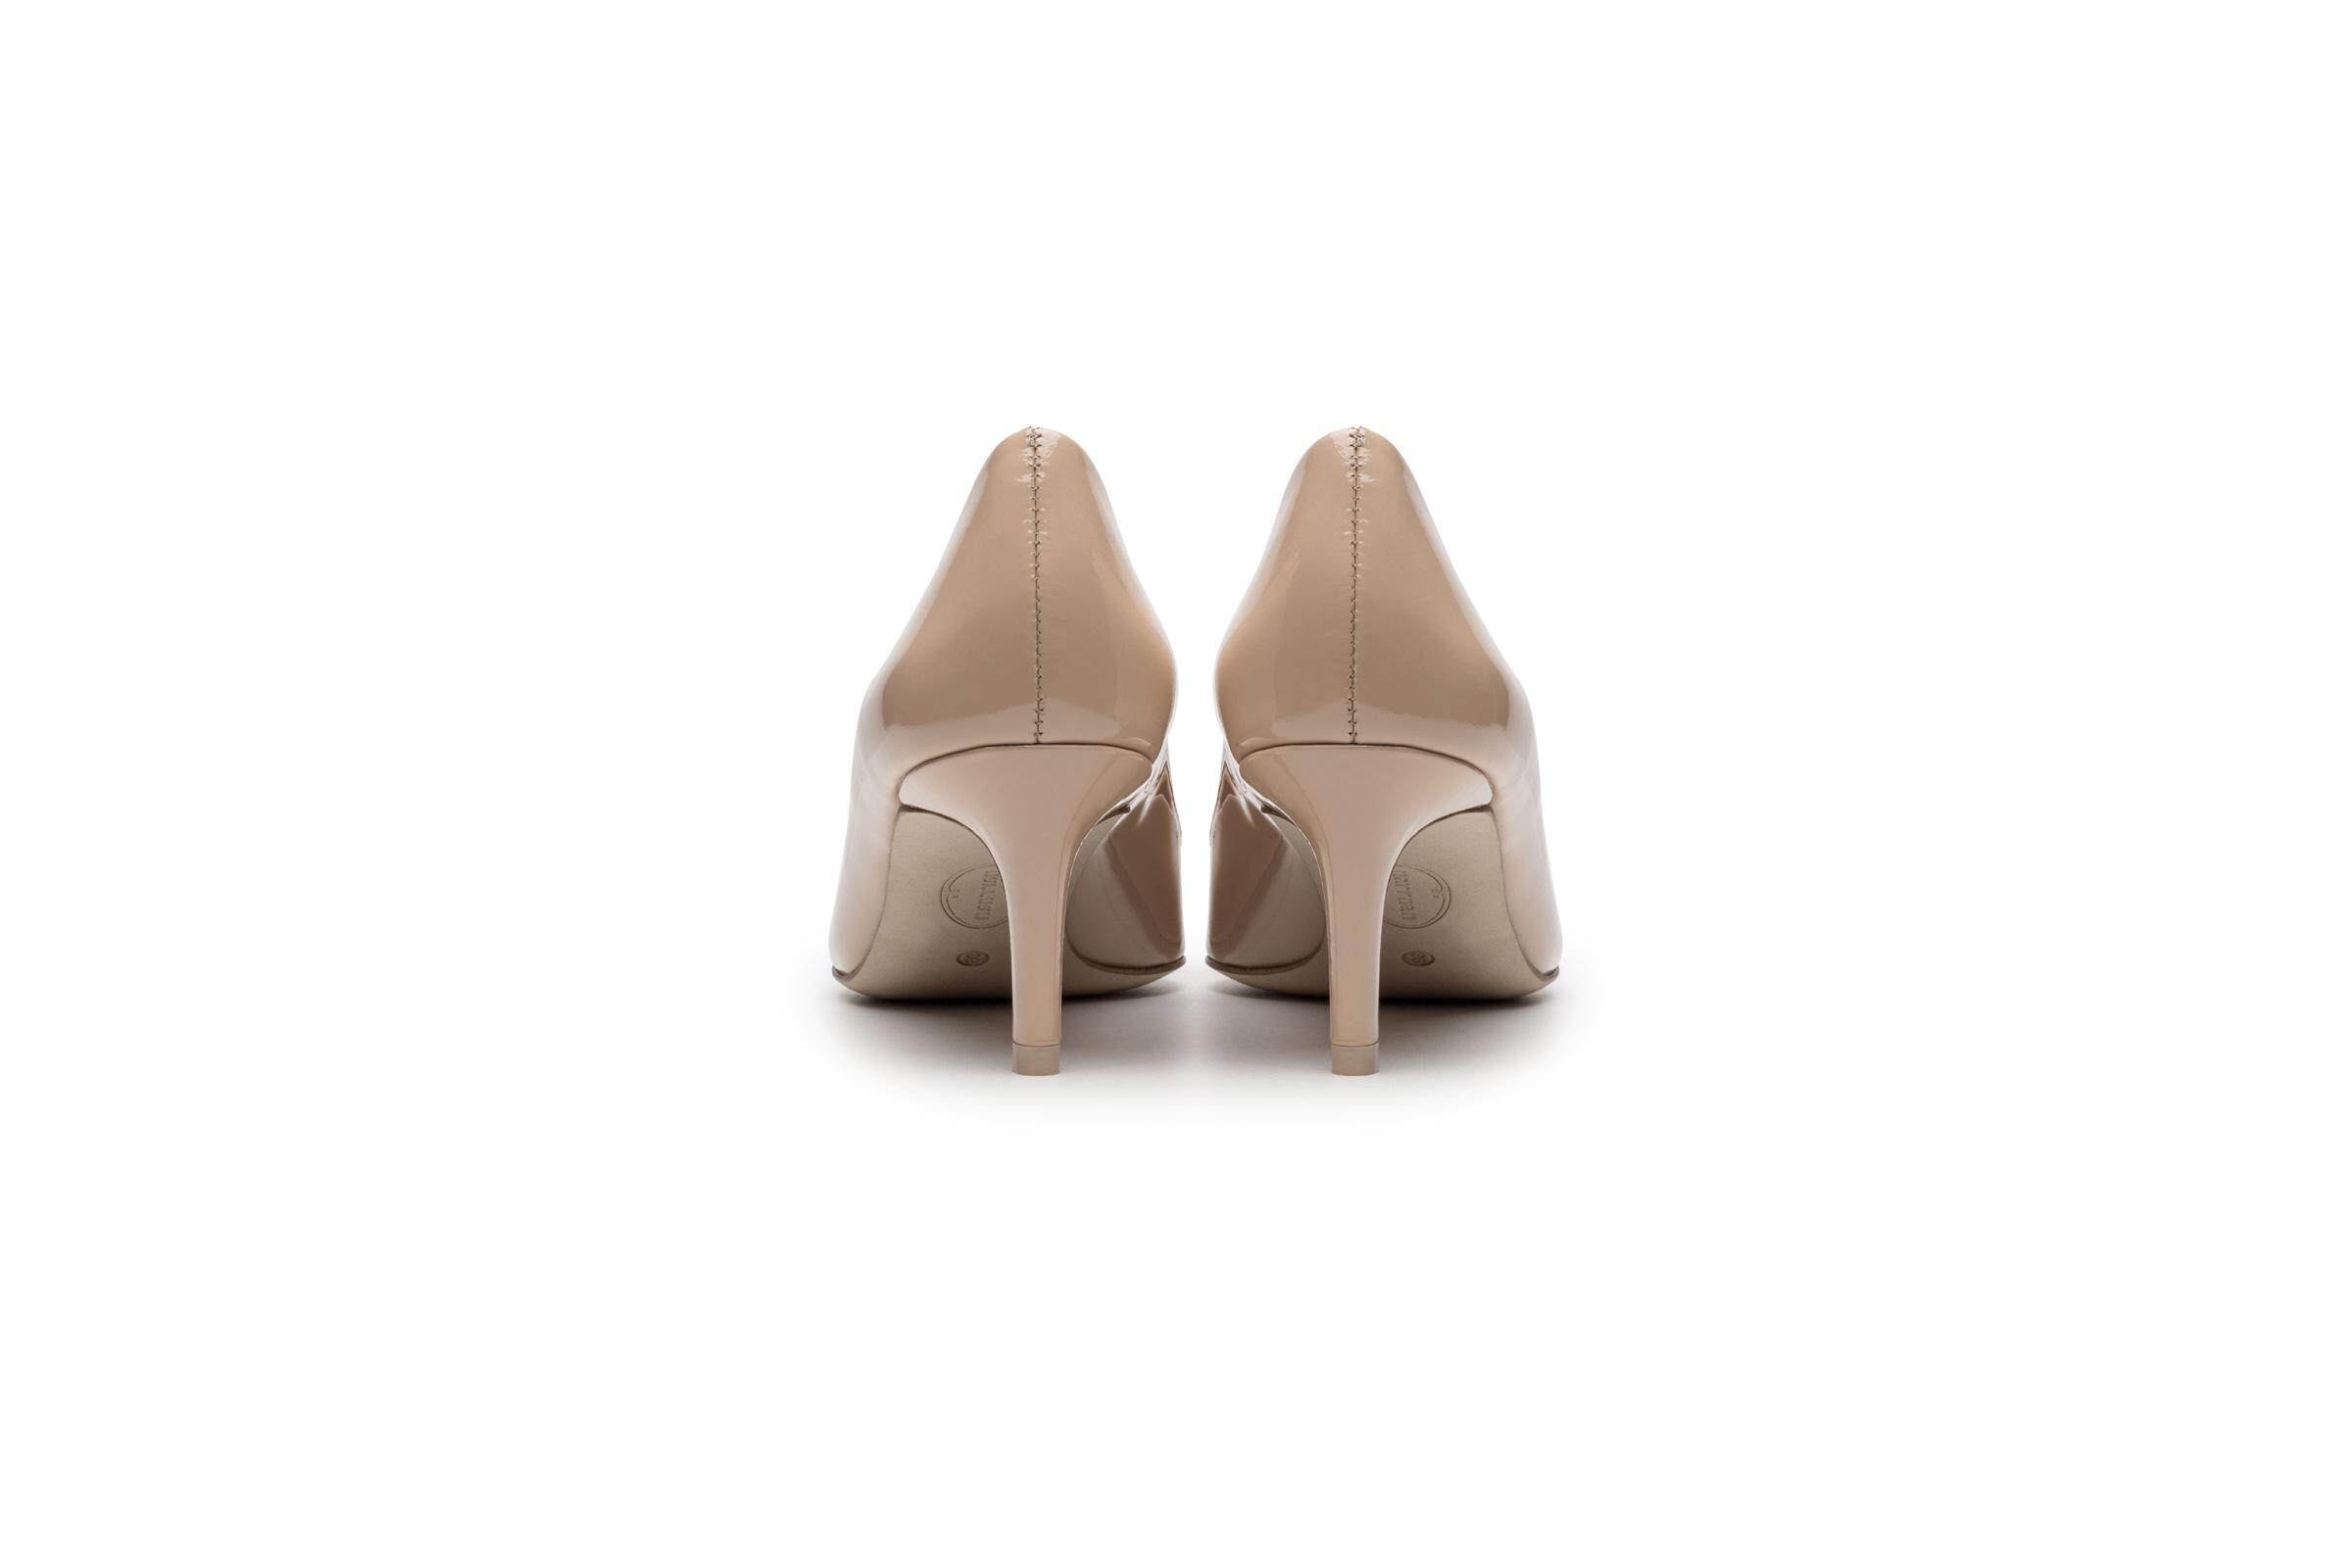 Butterfly Buckle Beige Patent Leather High Heel